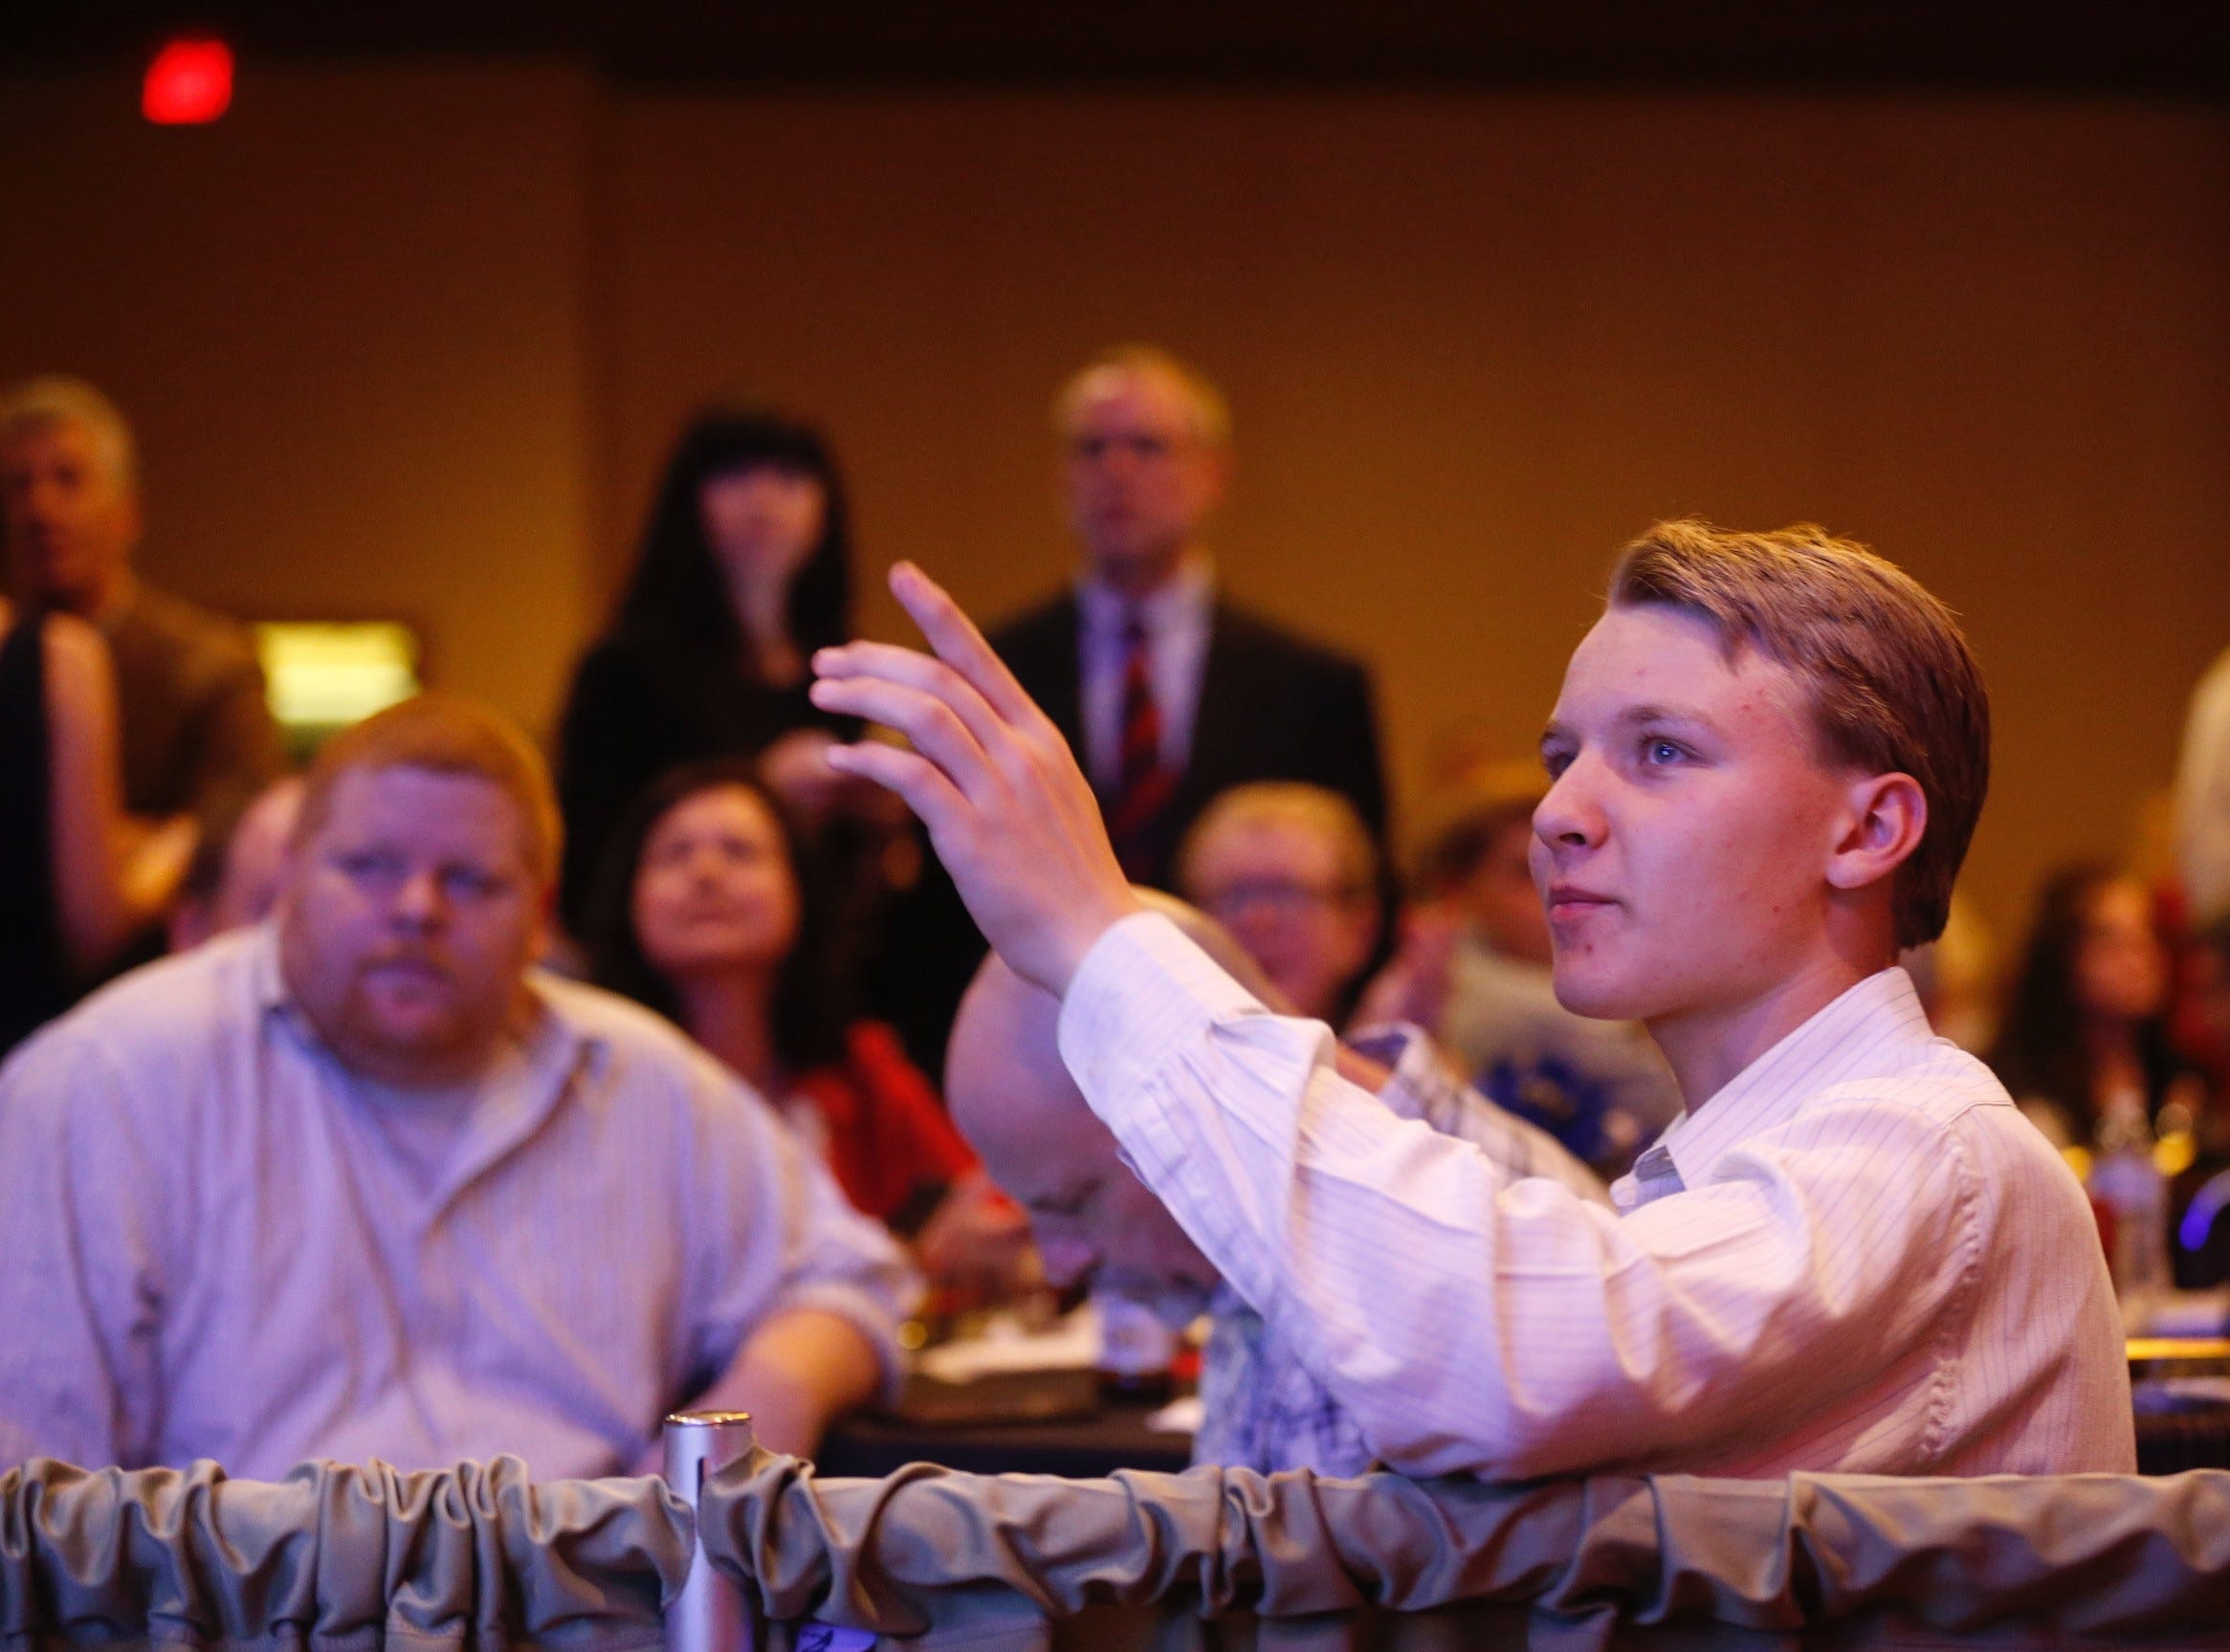 Adrik Fisher, 16, watches as election results come in at the Greene County Republican watch party at University Plaza.